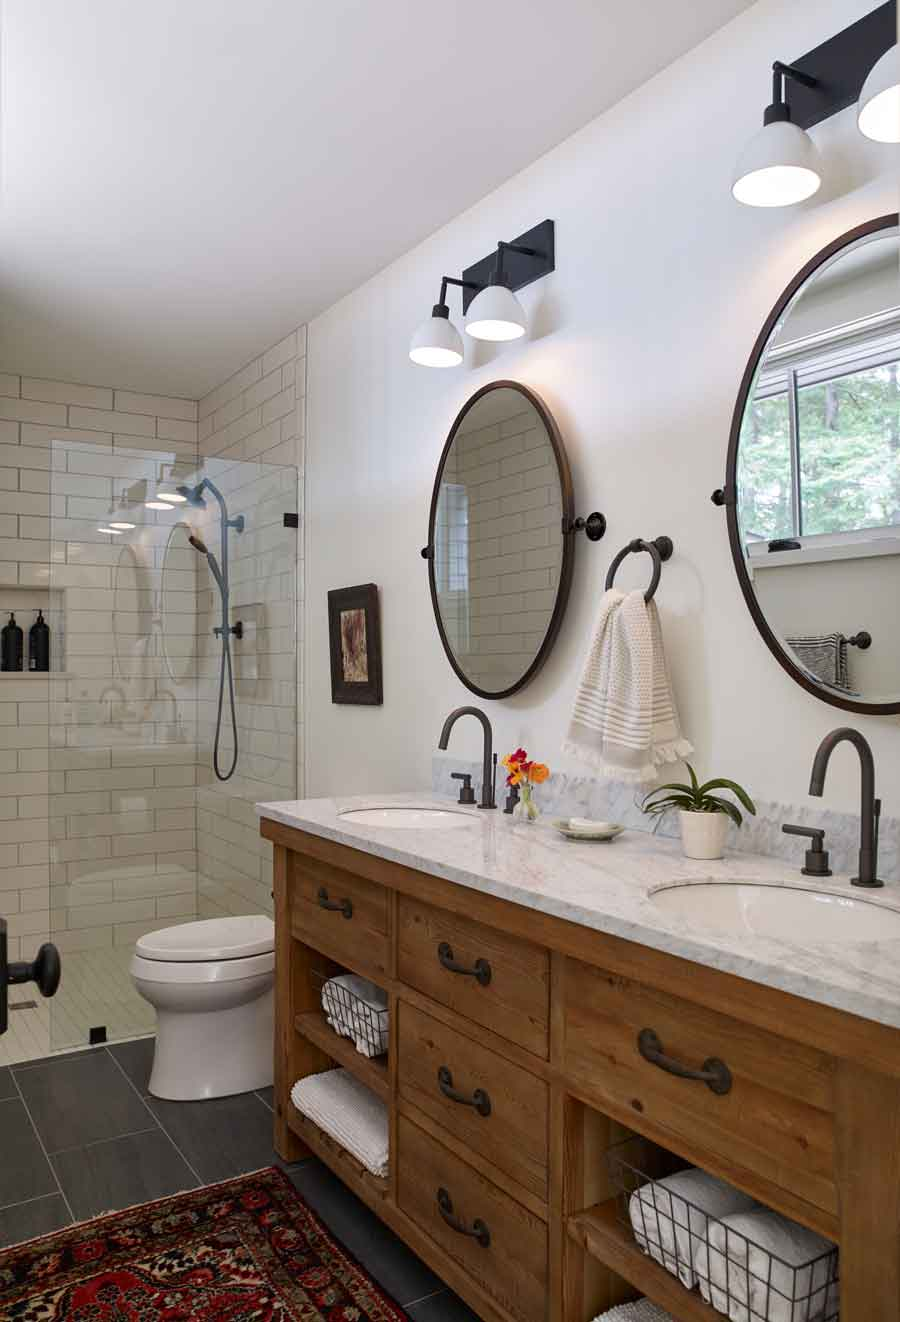 His and hers sinks in the owners' bath